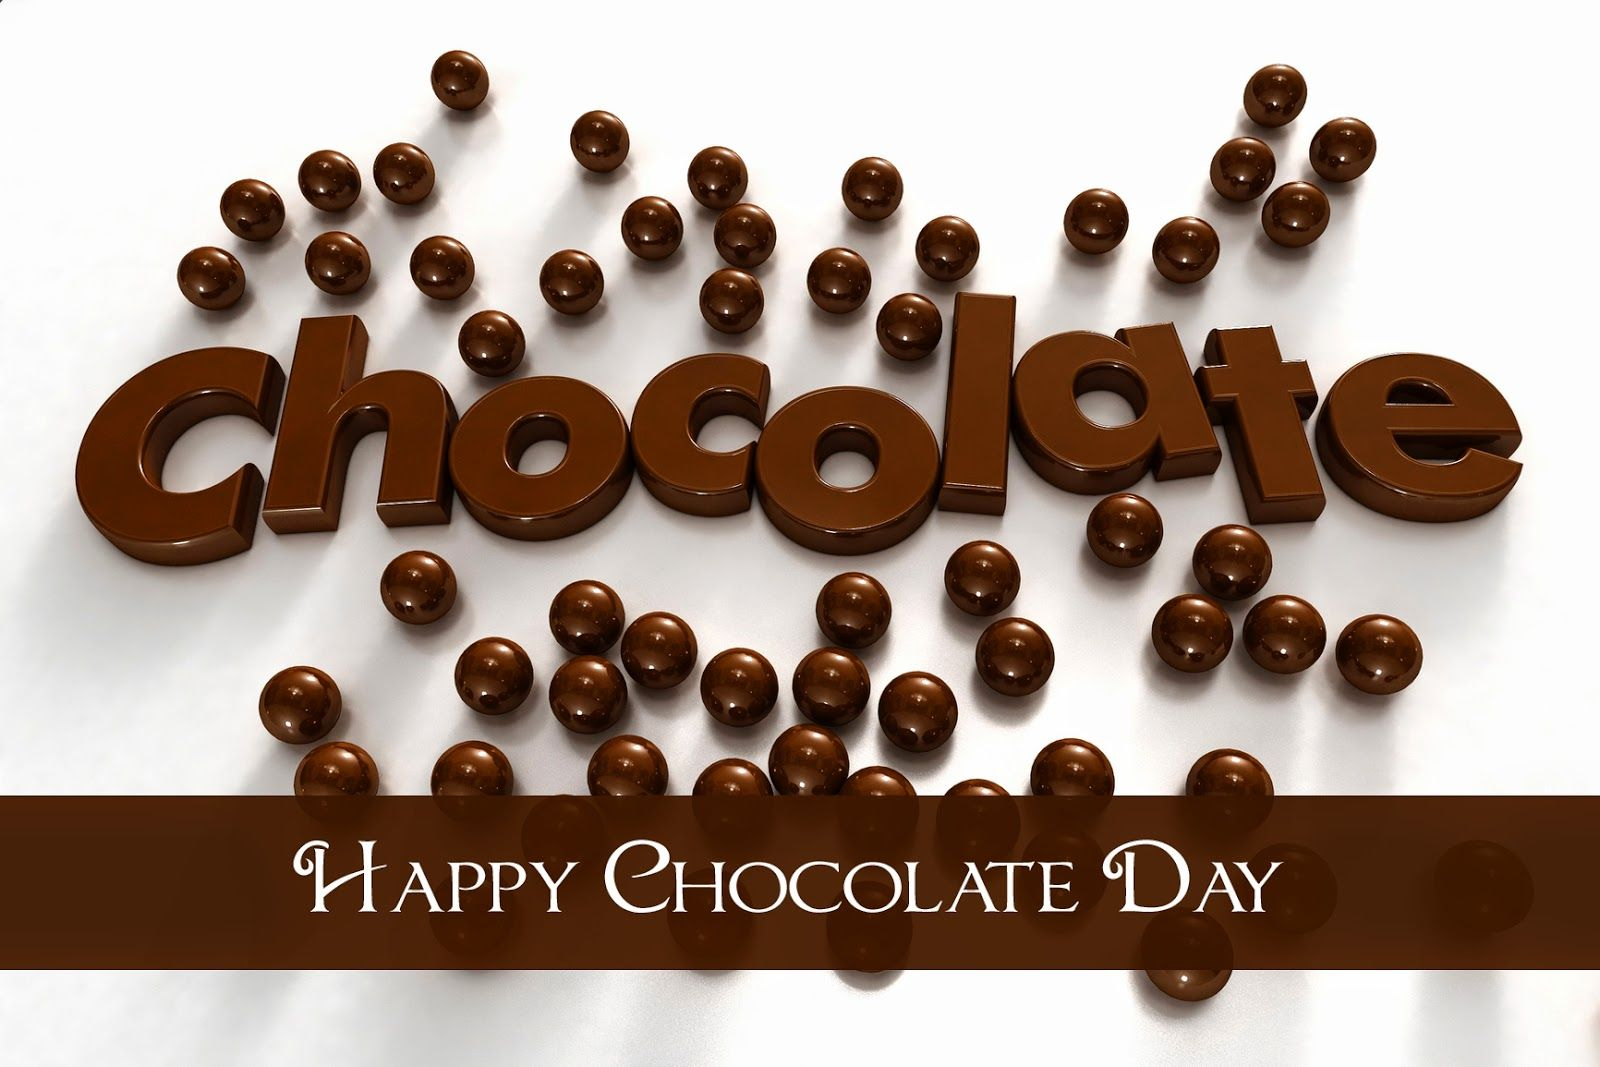 Happy chocolate day greetings chocolate lover pinterest happy chocolate day greetings m4hsunfo